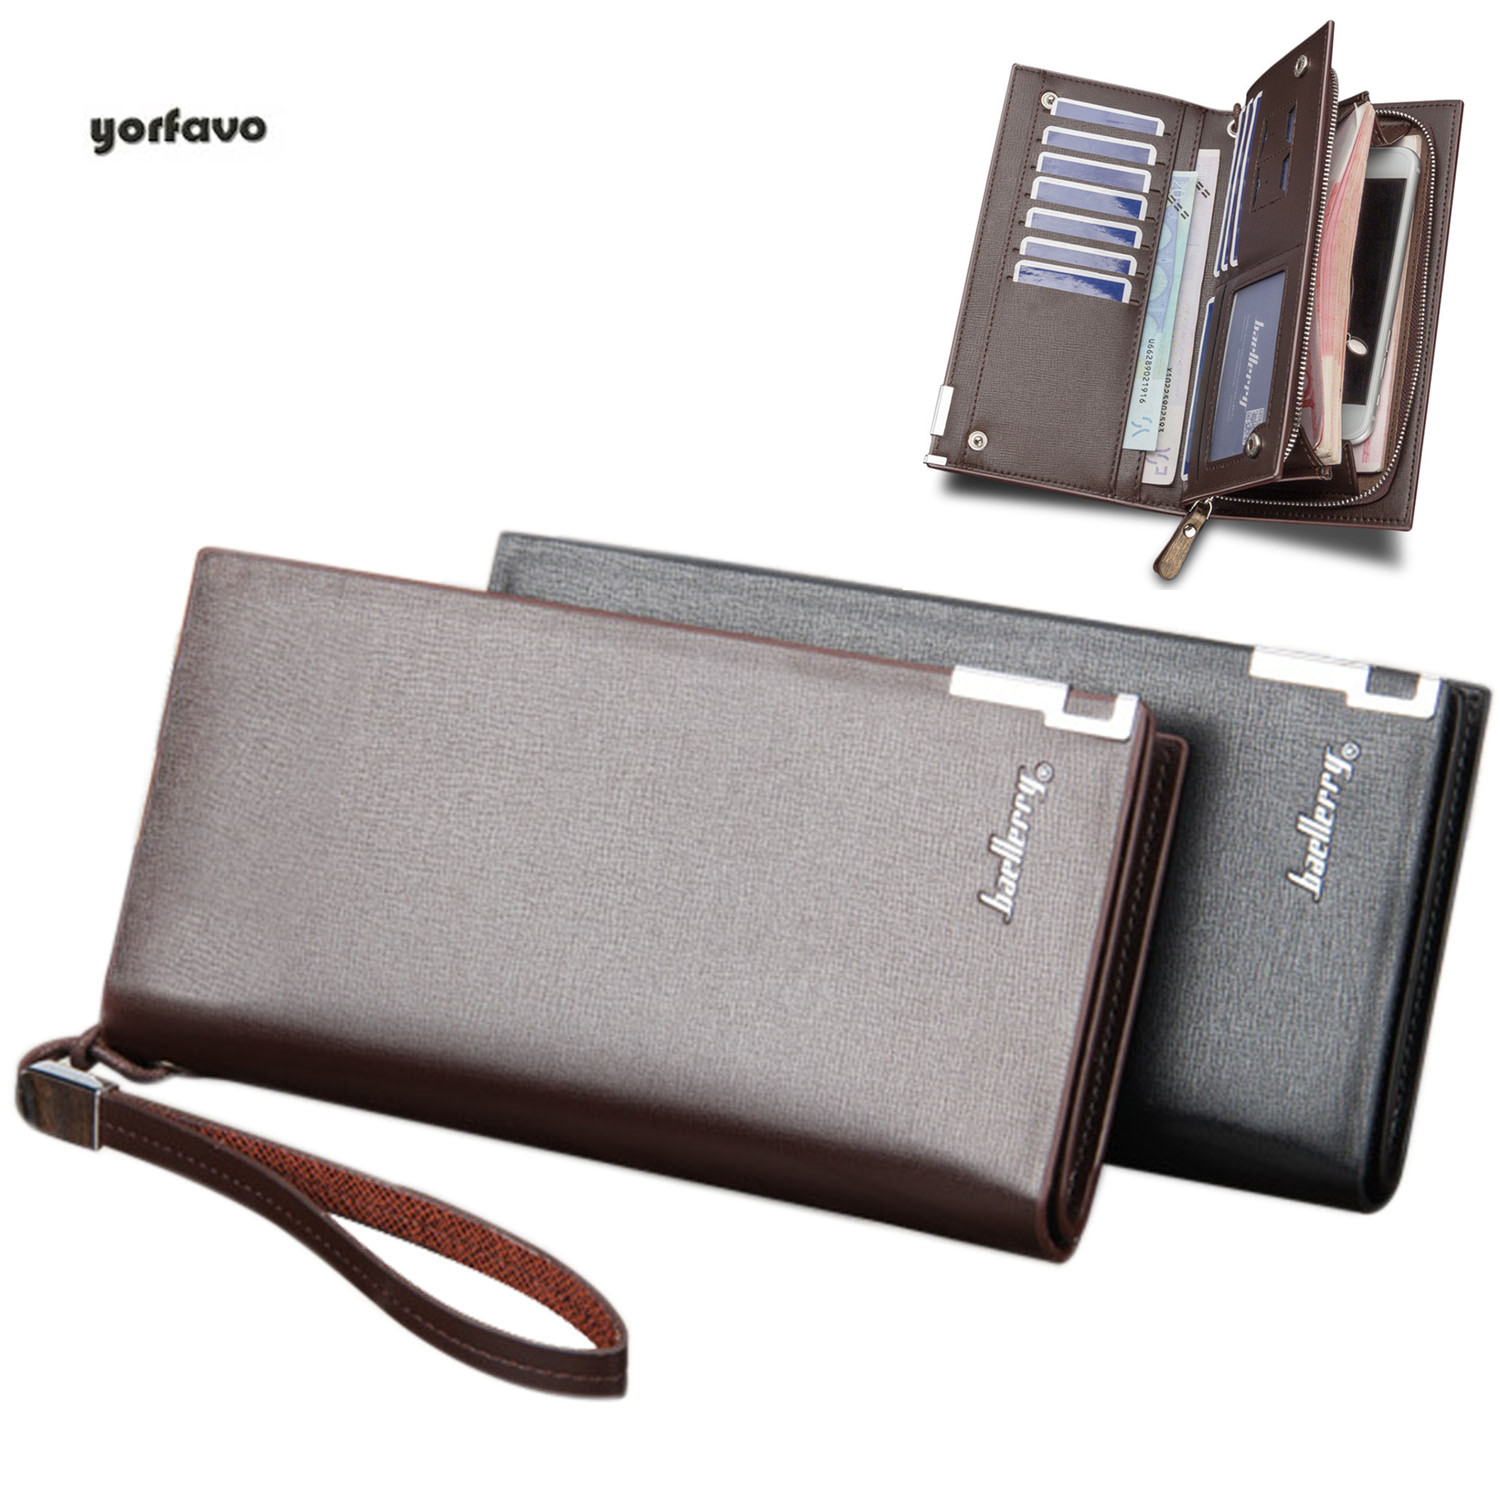 US $11.17 |New Fashion Men Wallets Long Style Multi functional wallet Purse Fresh PU leather Male Clutch Card Holder Purse Men Coin Purse on